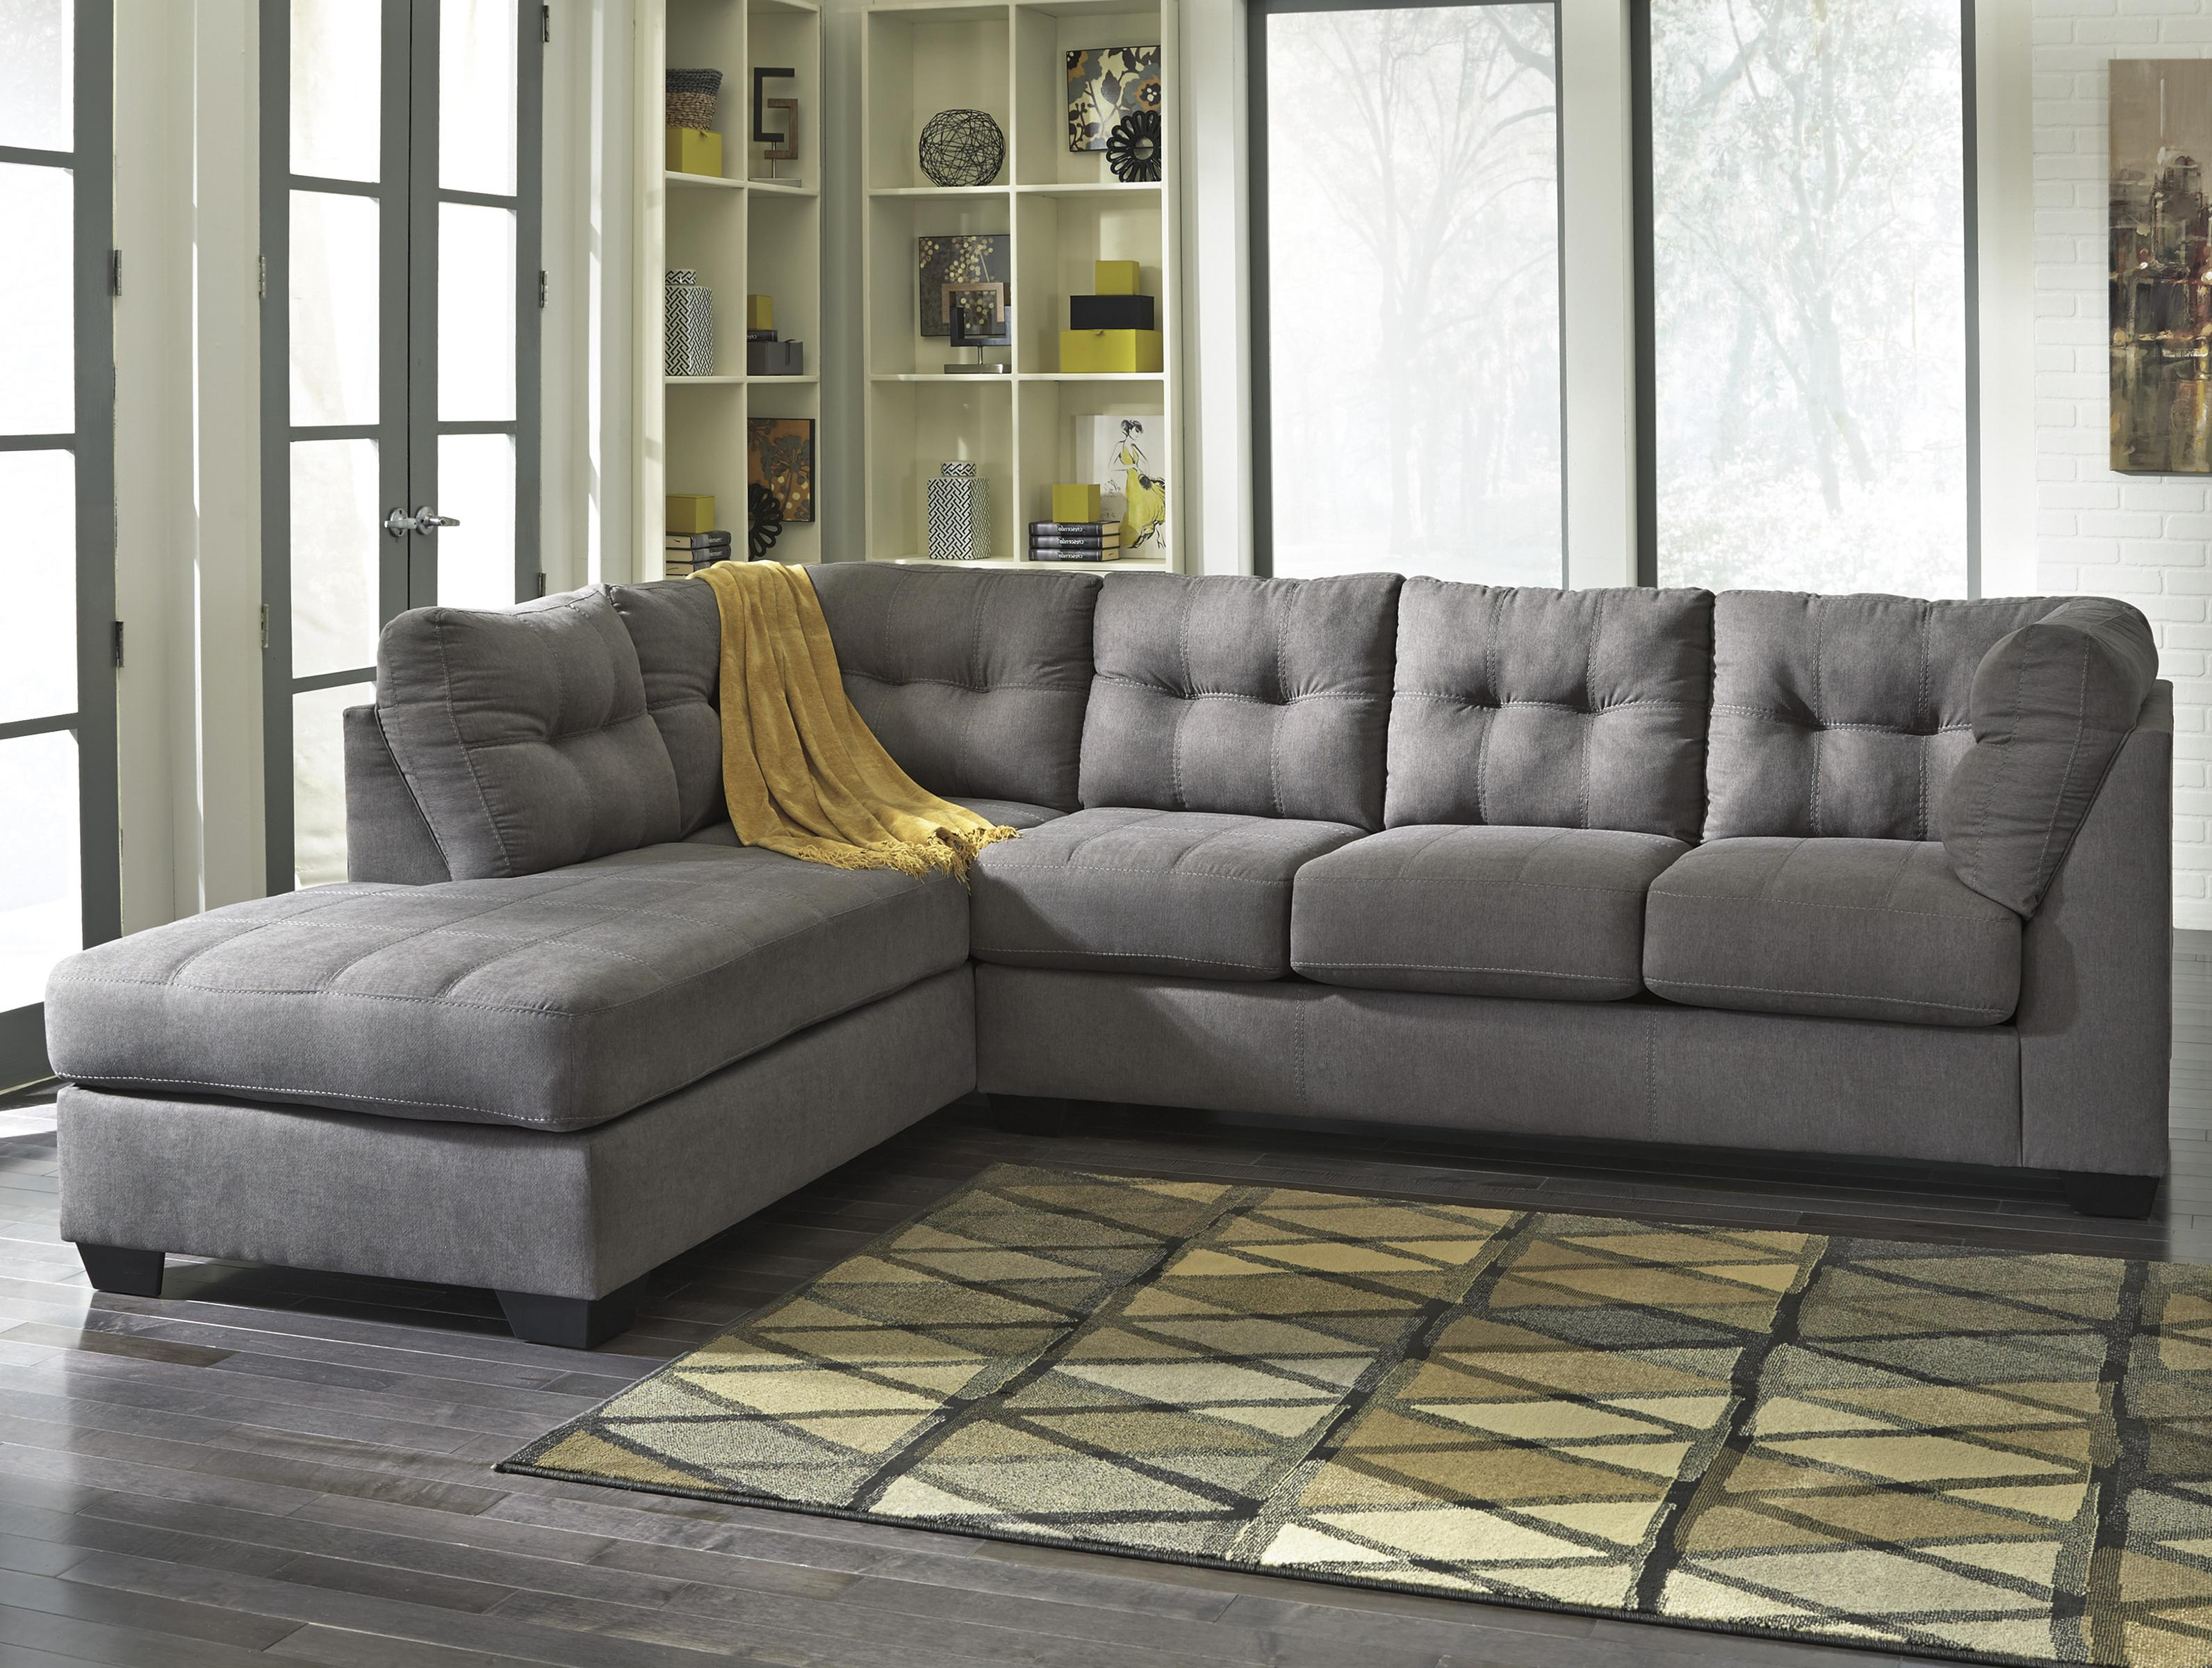 Mayberry Mayberry Sectional w/ Left Chaise by Benchcraft at Walker's Furniture